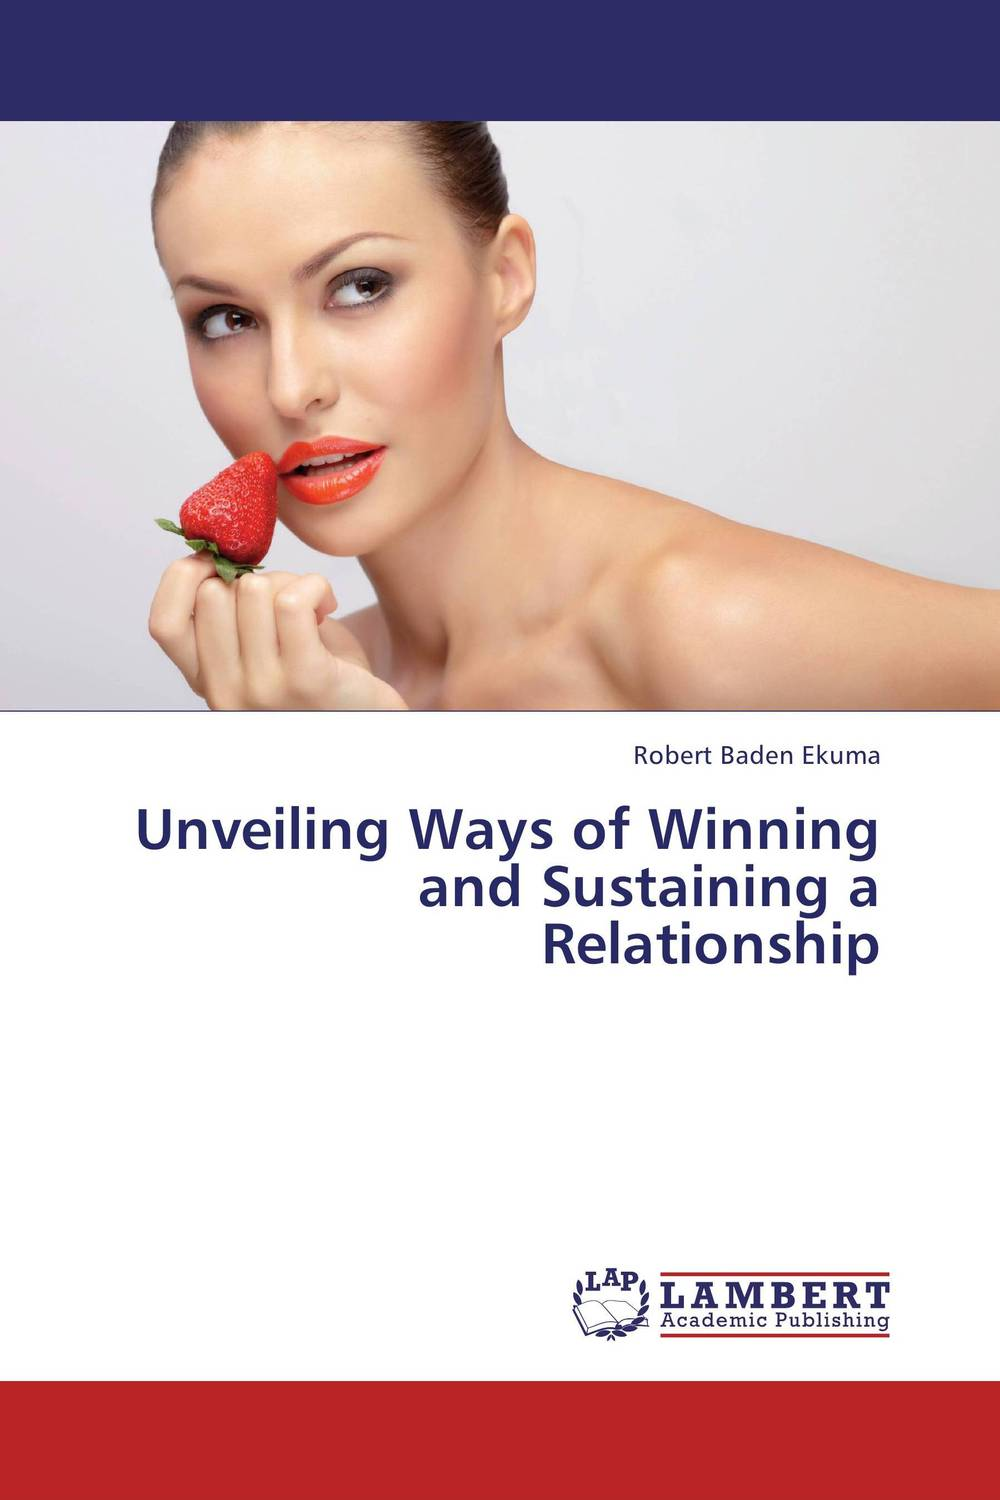 Unveiling Ways of Winning and Sustaining a Relationship scientific and mythological ways of knowing in anthropology